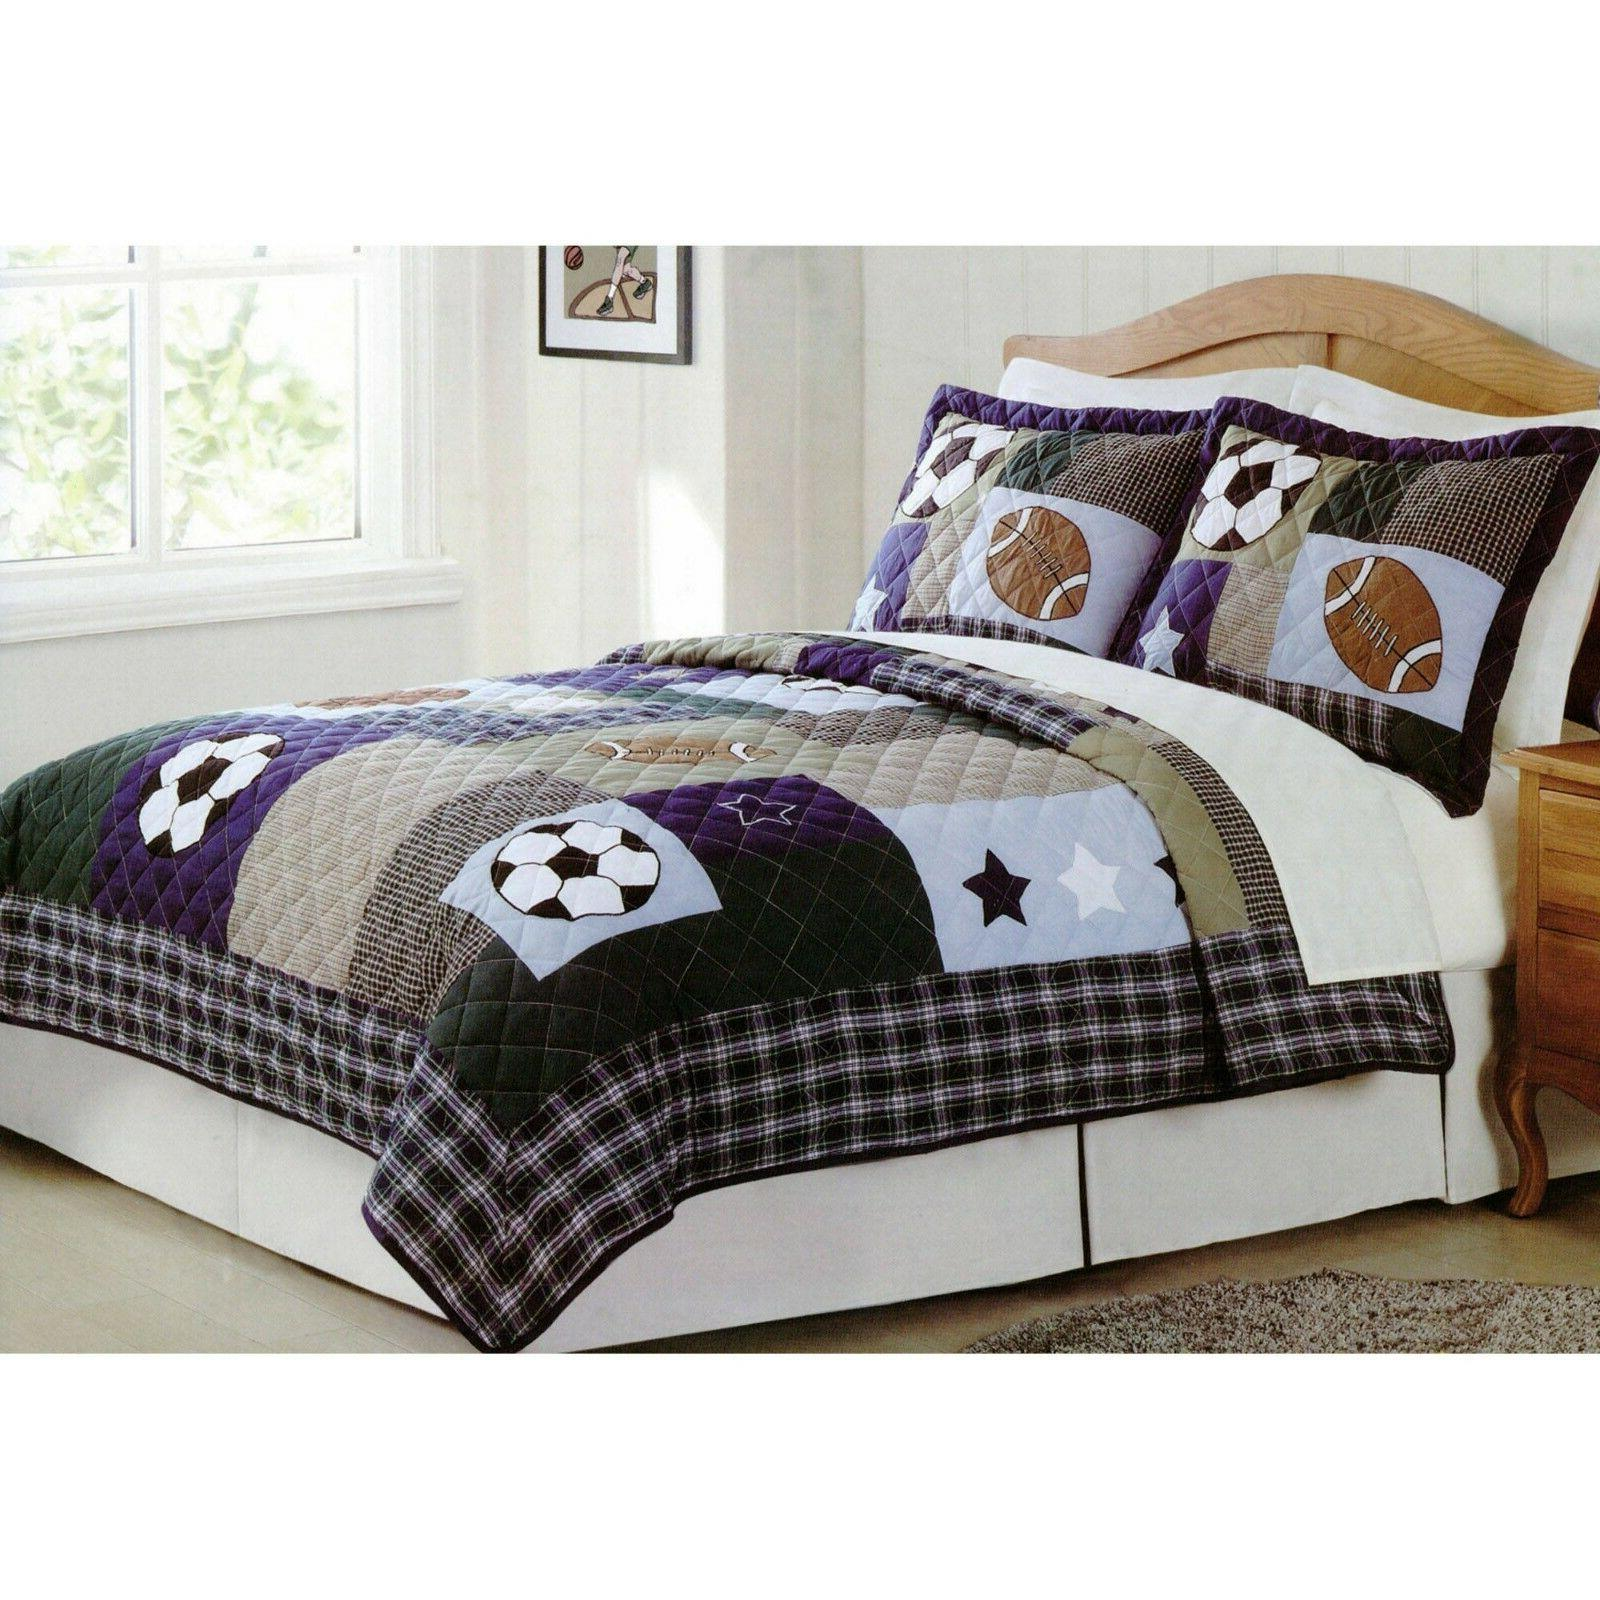 Pem America 2-Piece Sport Collage Quilt Set, Twin